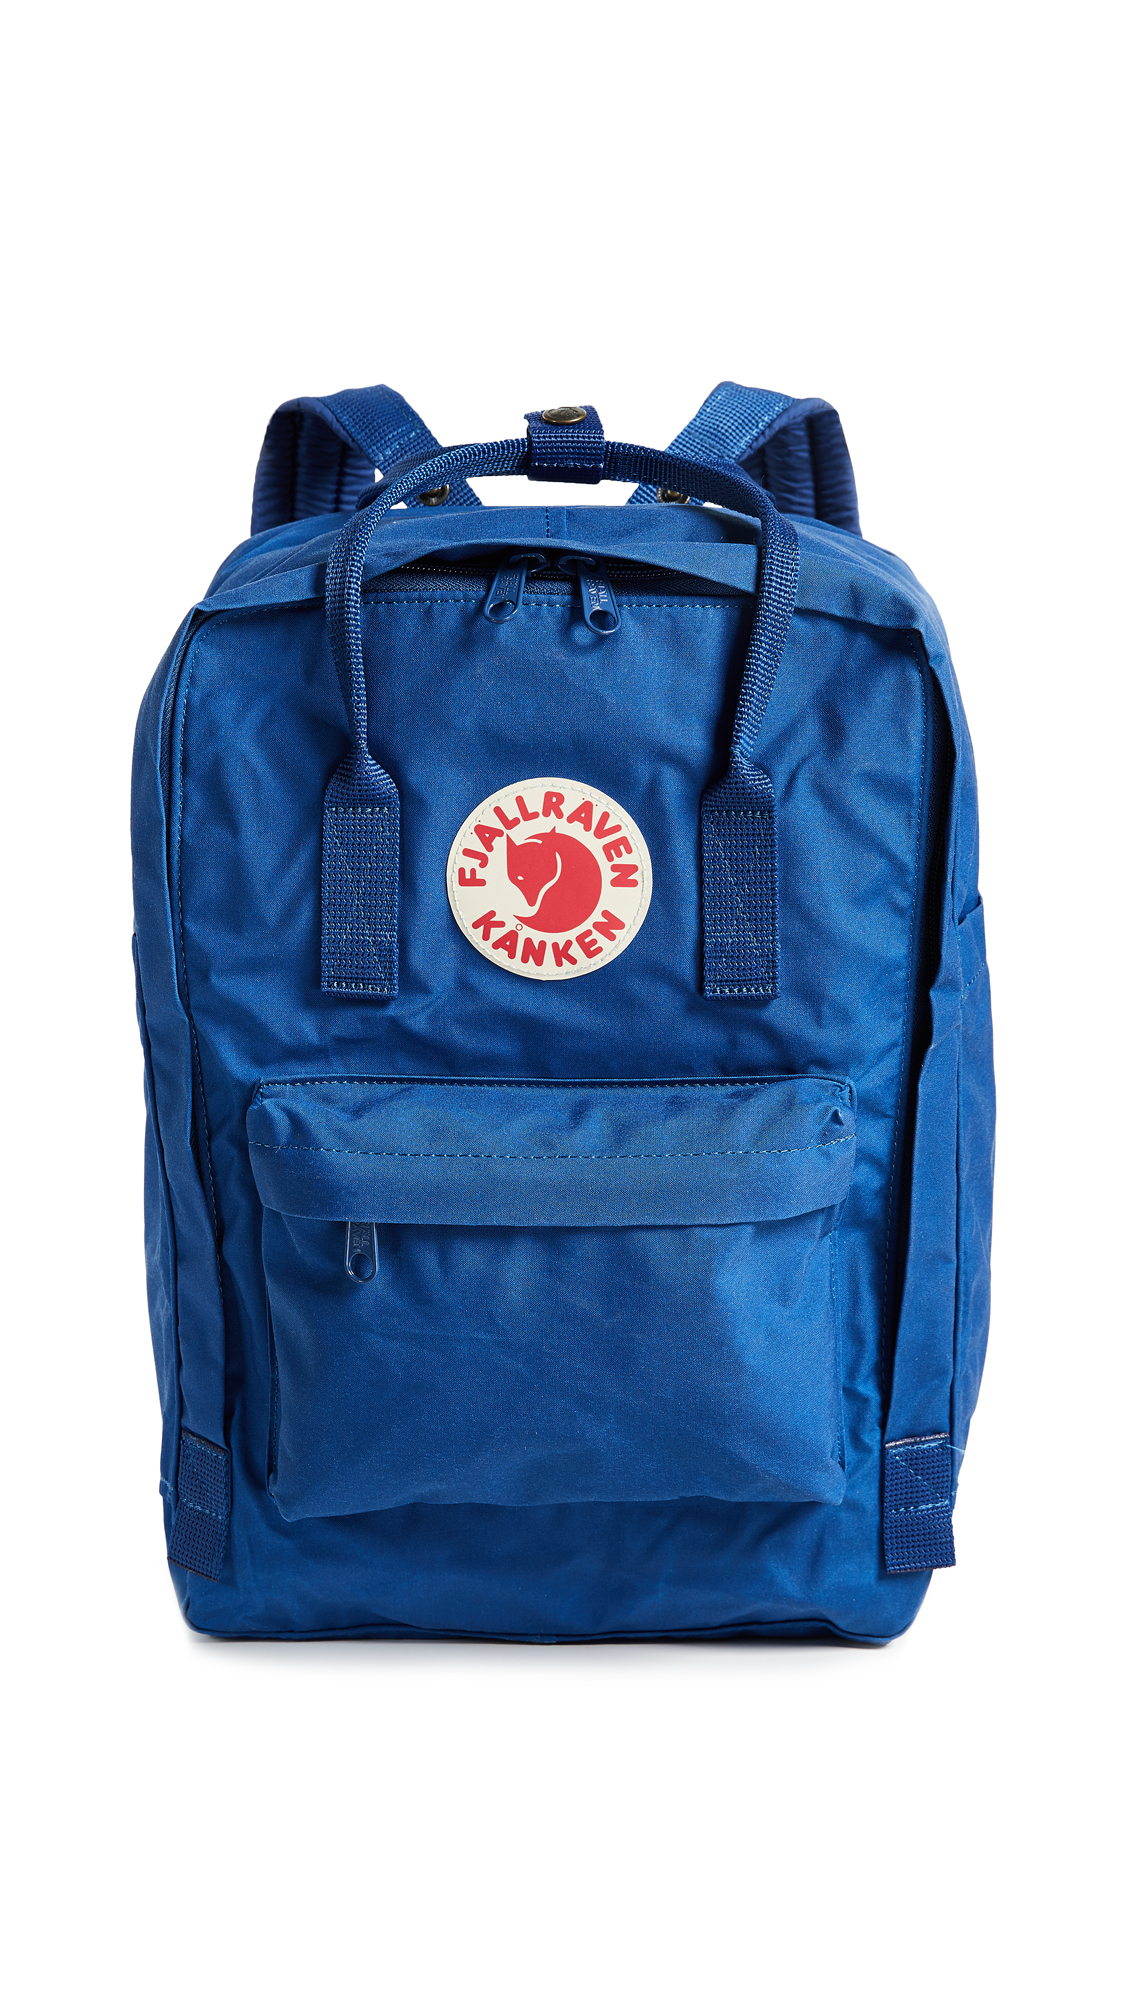 "FJALL RAVEN Kanken 15 Laptop Bag"" in Deep Blue"